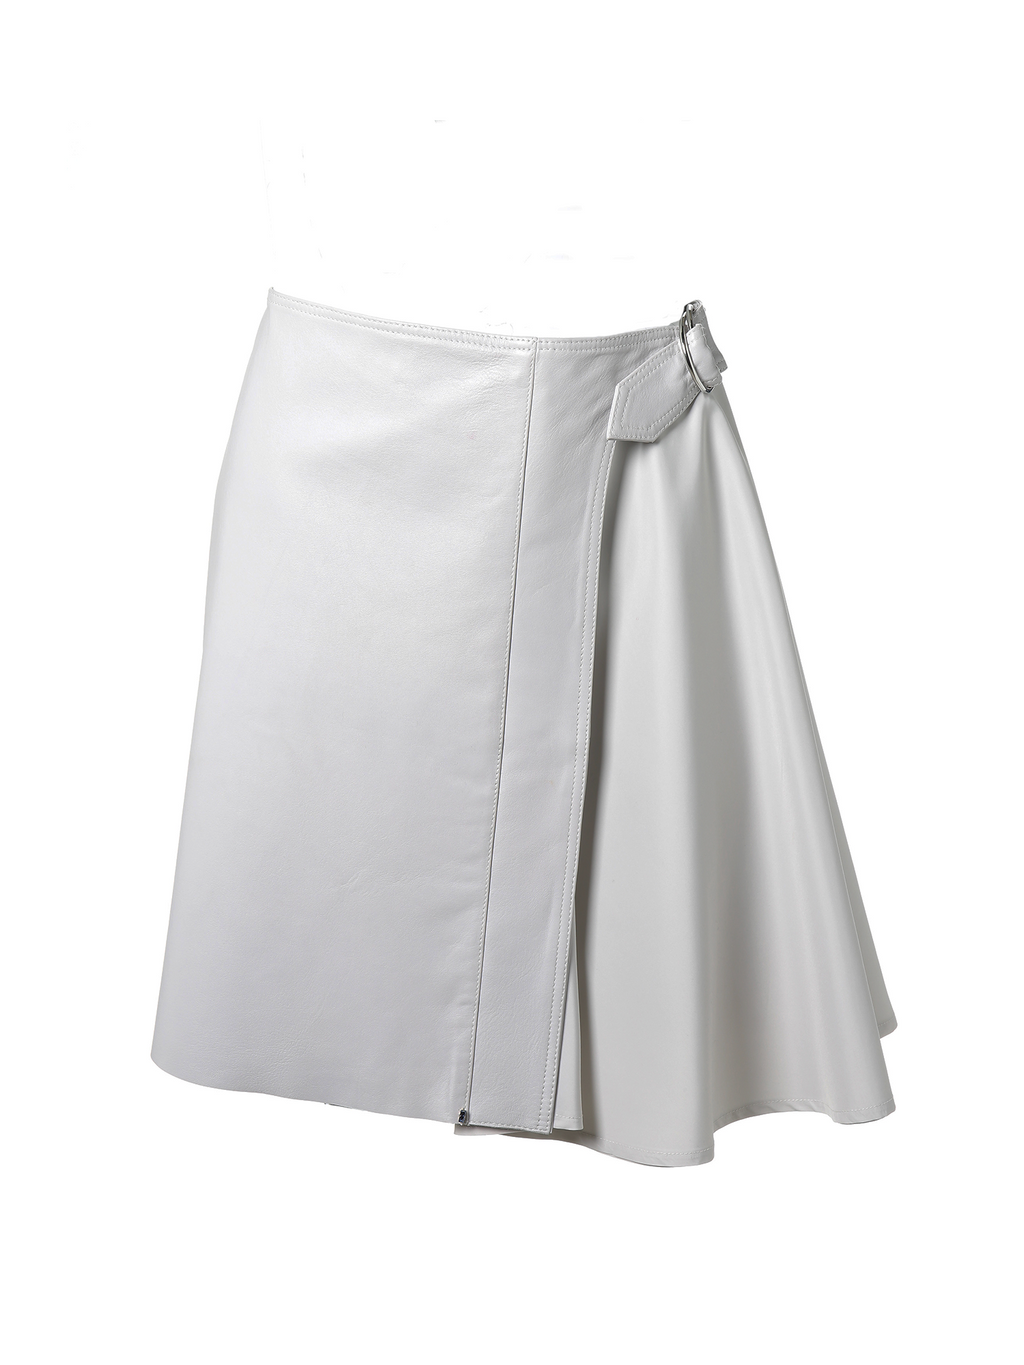 Max Mara Sportmax Tefrite Leather Skirt - Ice